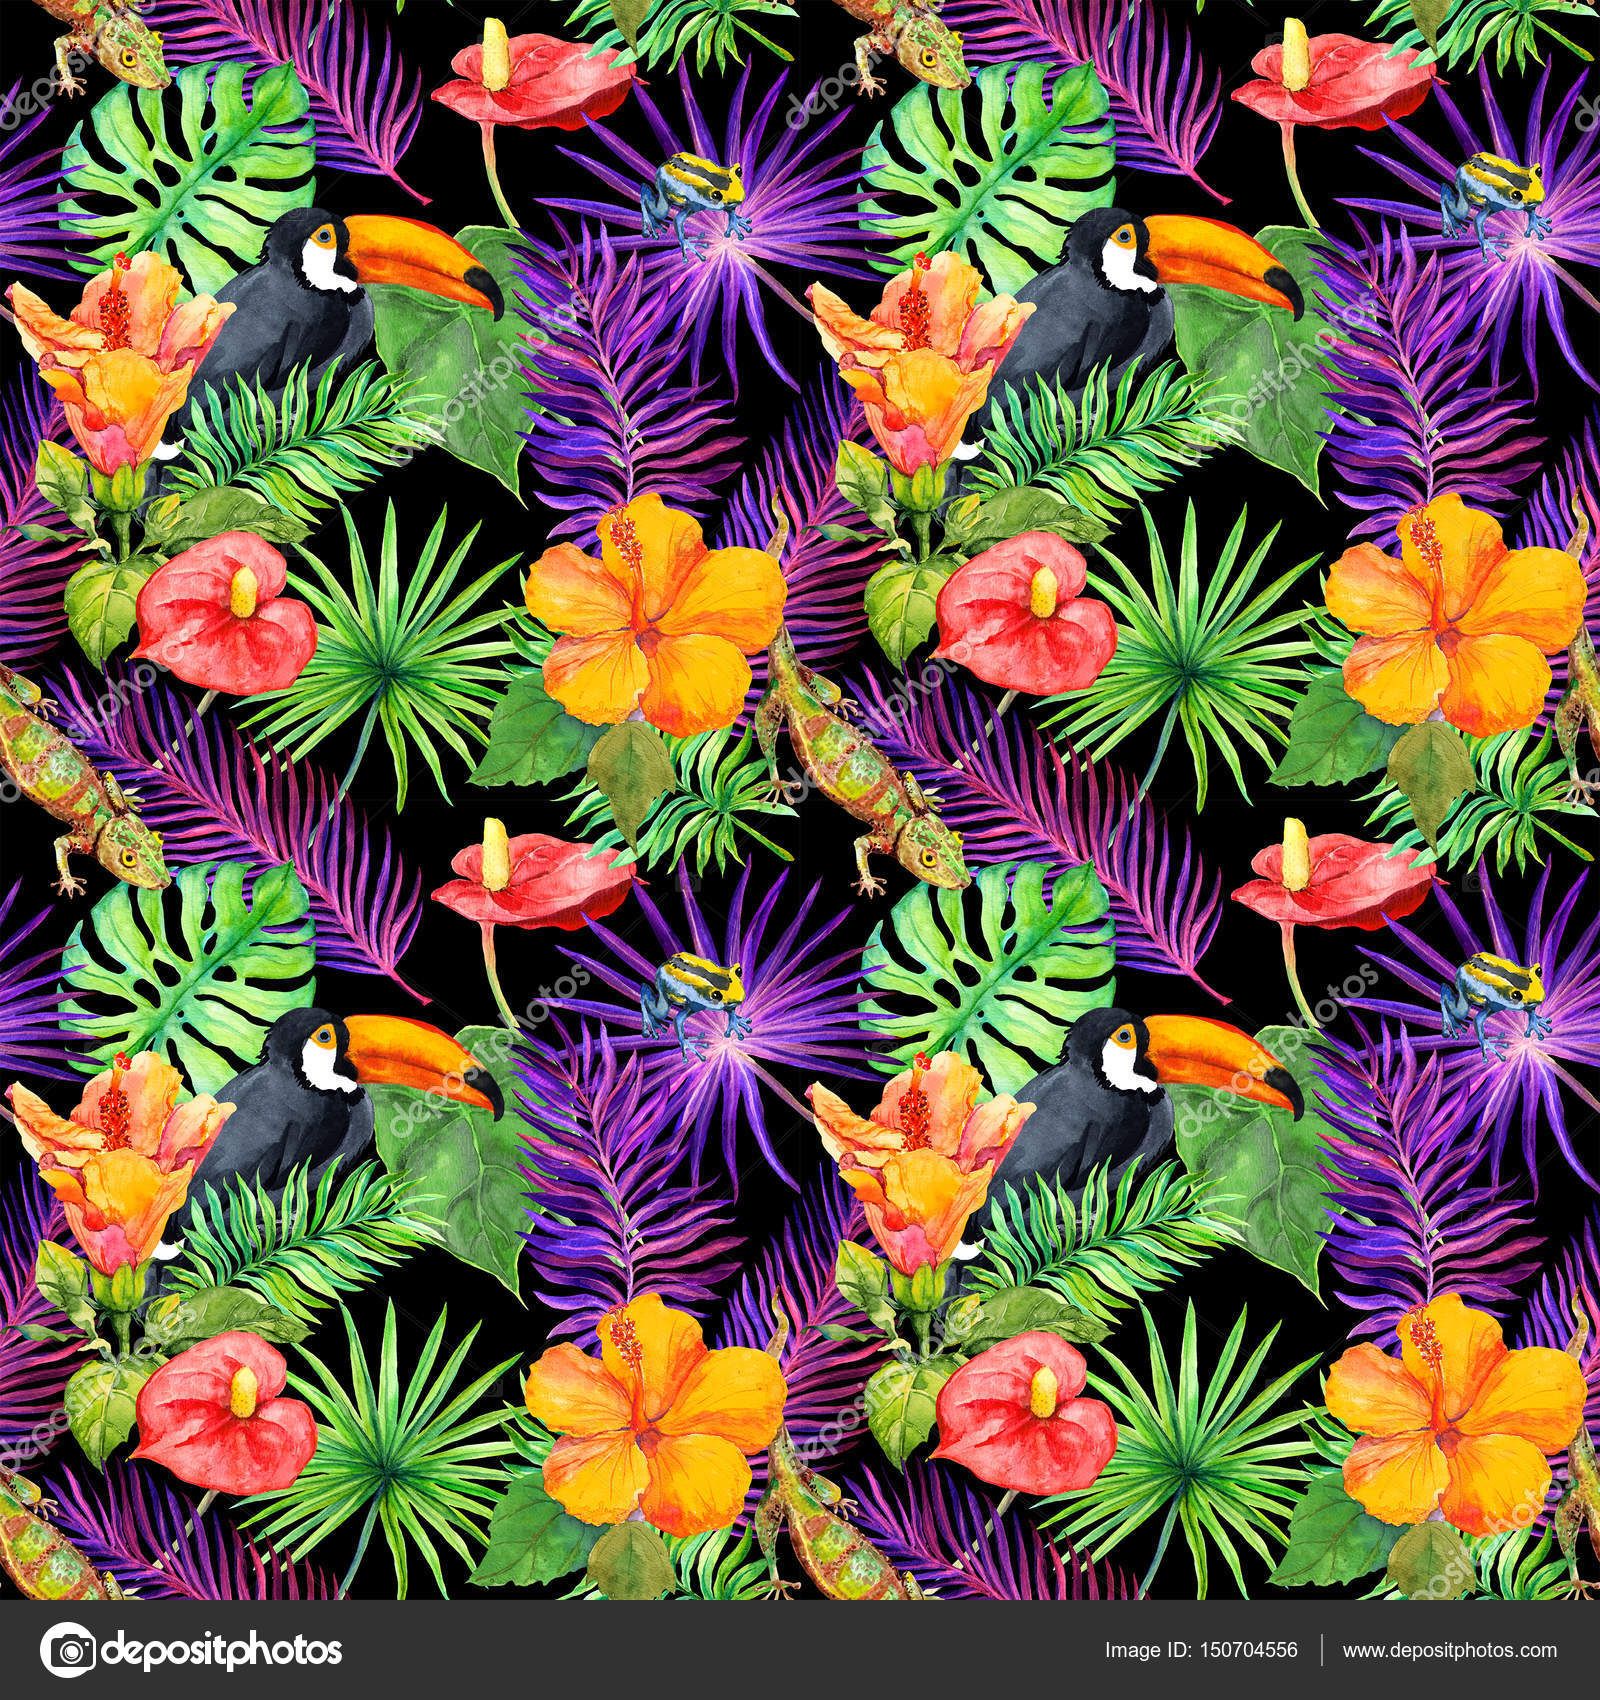 wallpaper tropical birds and foliage - photo #16